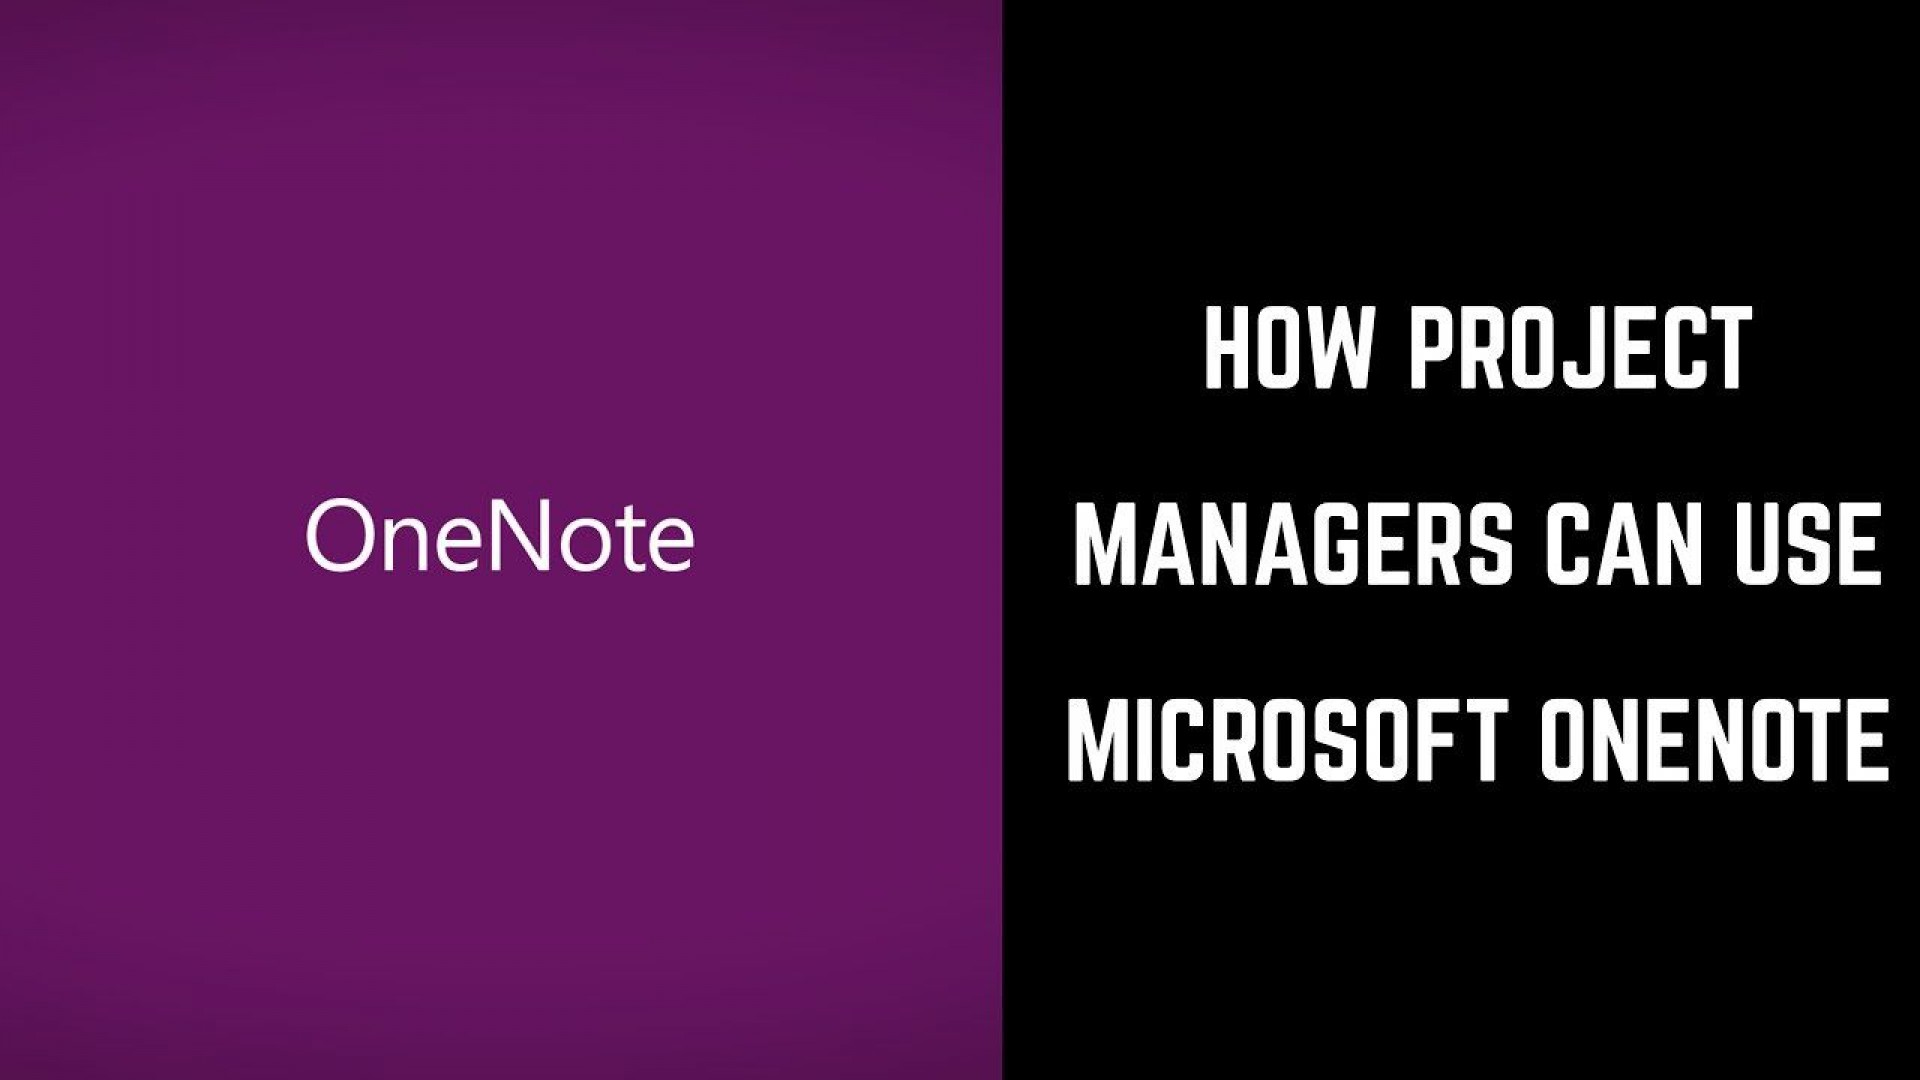 007 Unbelievable Microsoft Onenote Project Management Template High Definition 1920